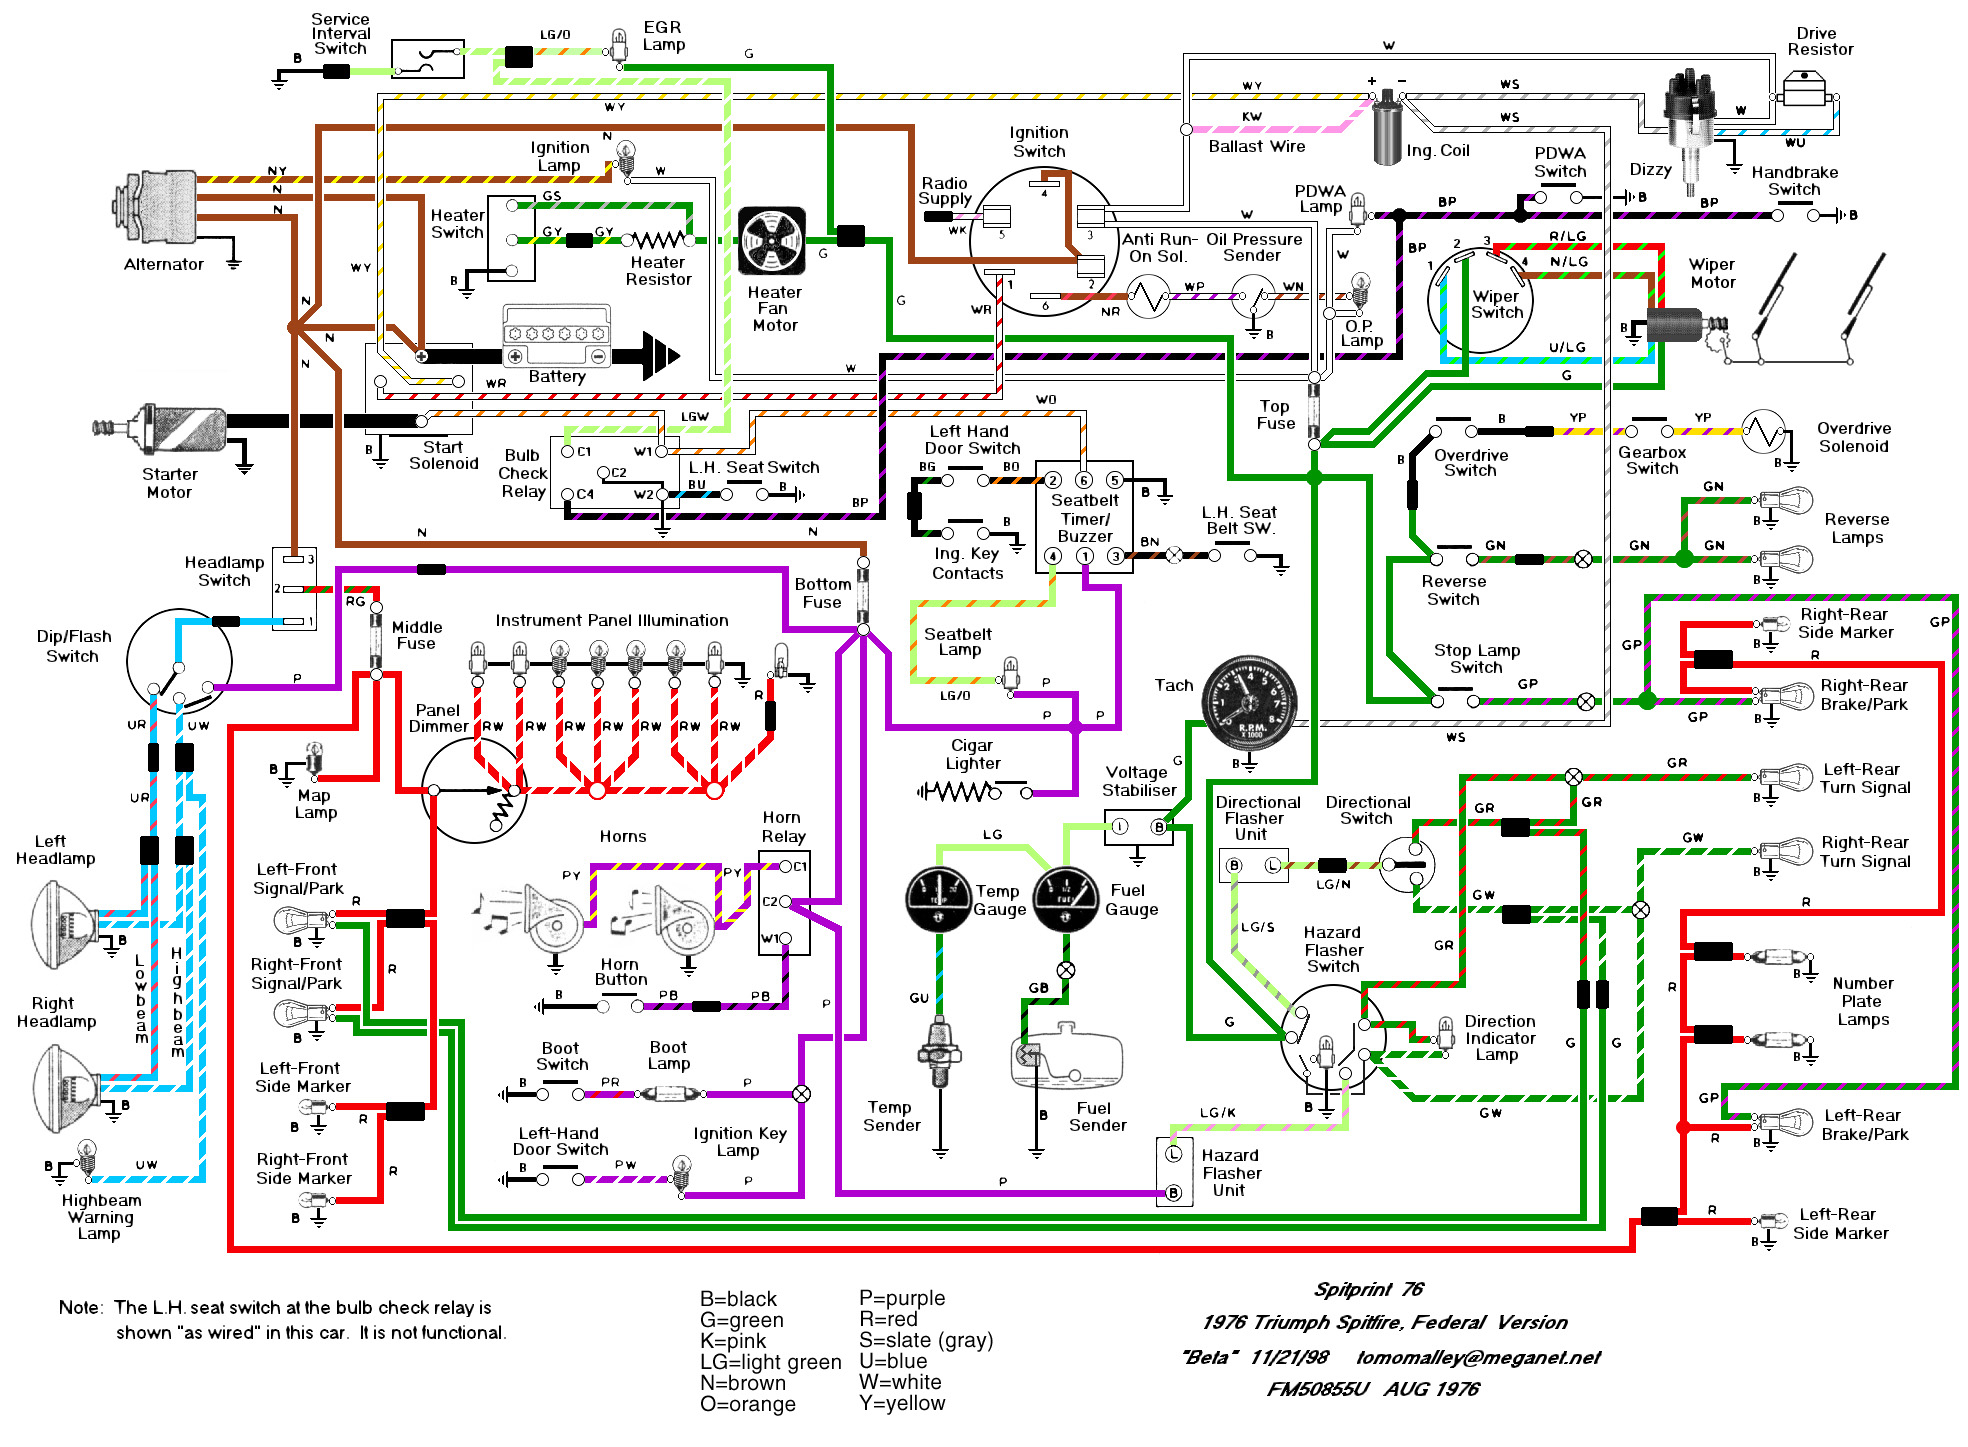 76diagram wiring schematics and diagrams triumph spitfire, gt6, herald vehicle harness wiring diagram at edmiracle.co